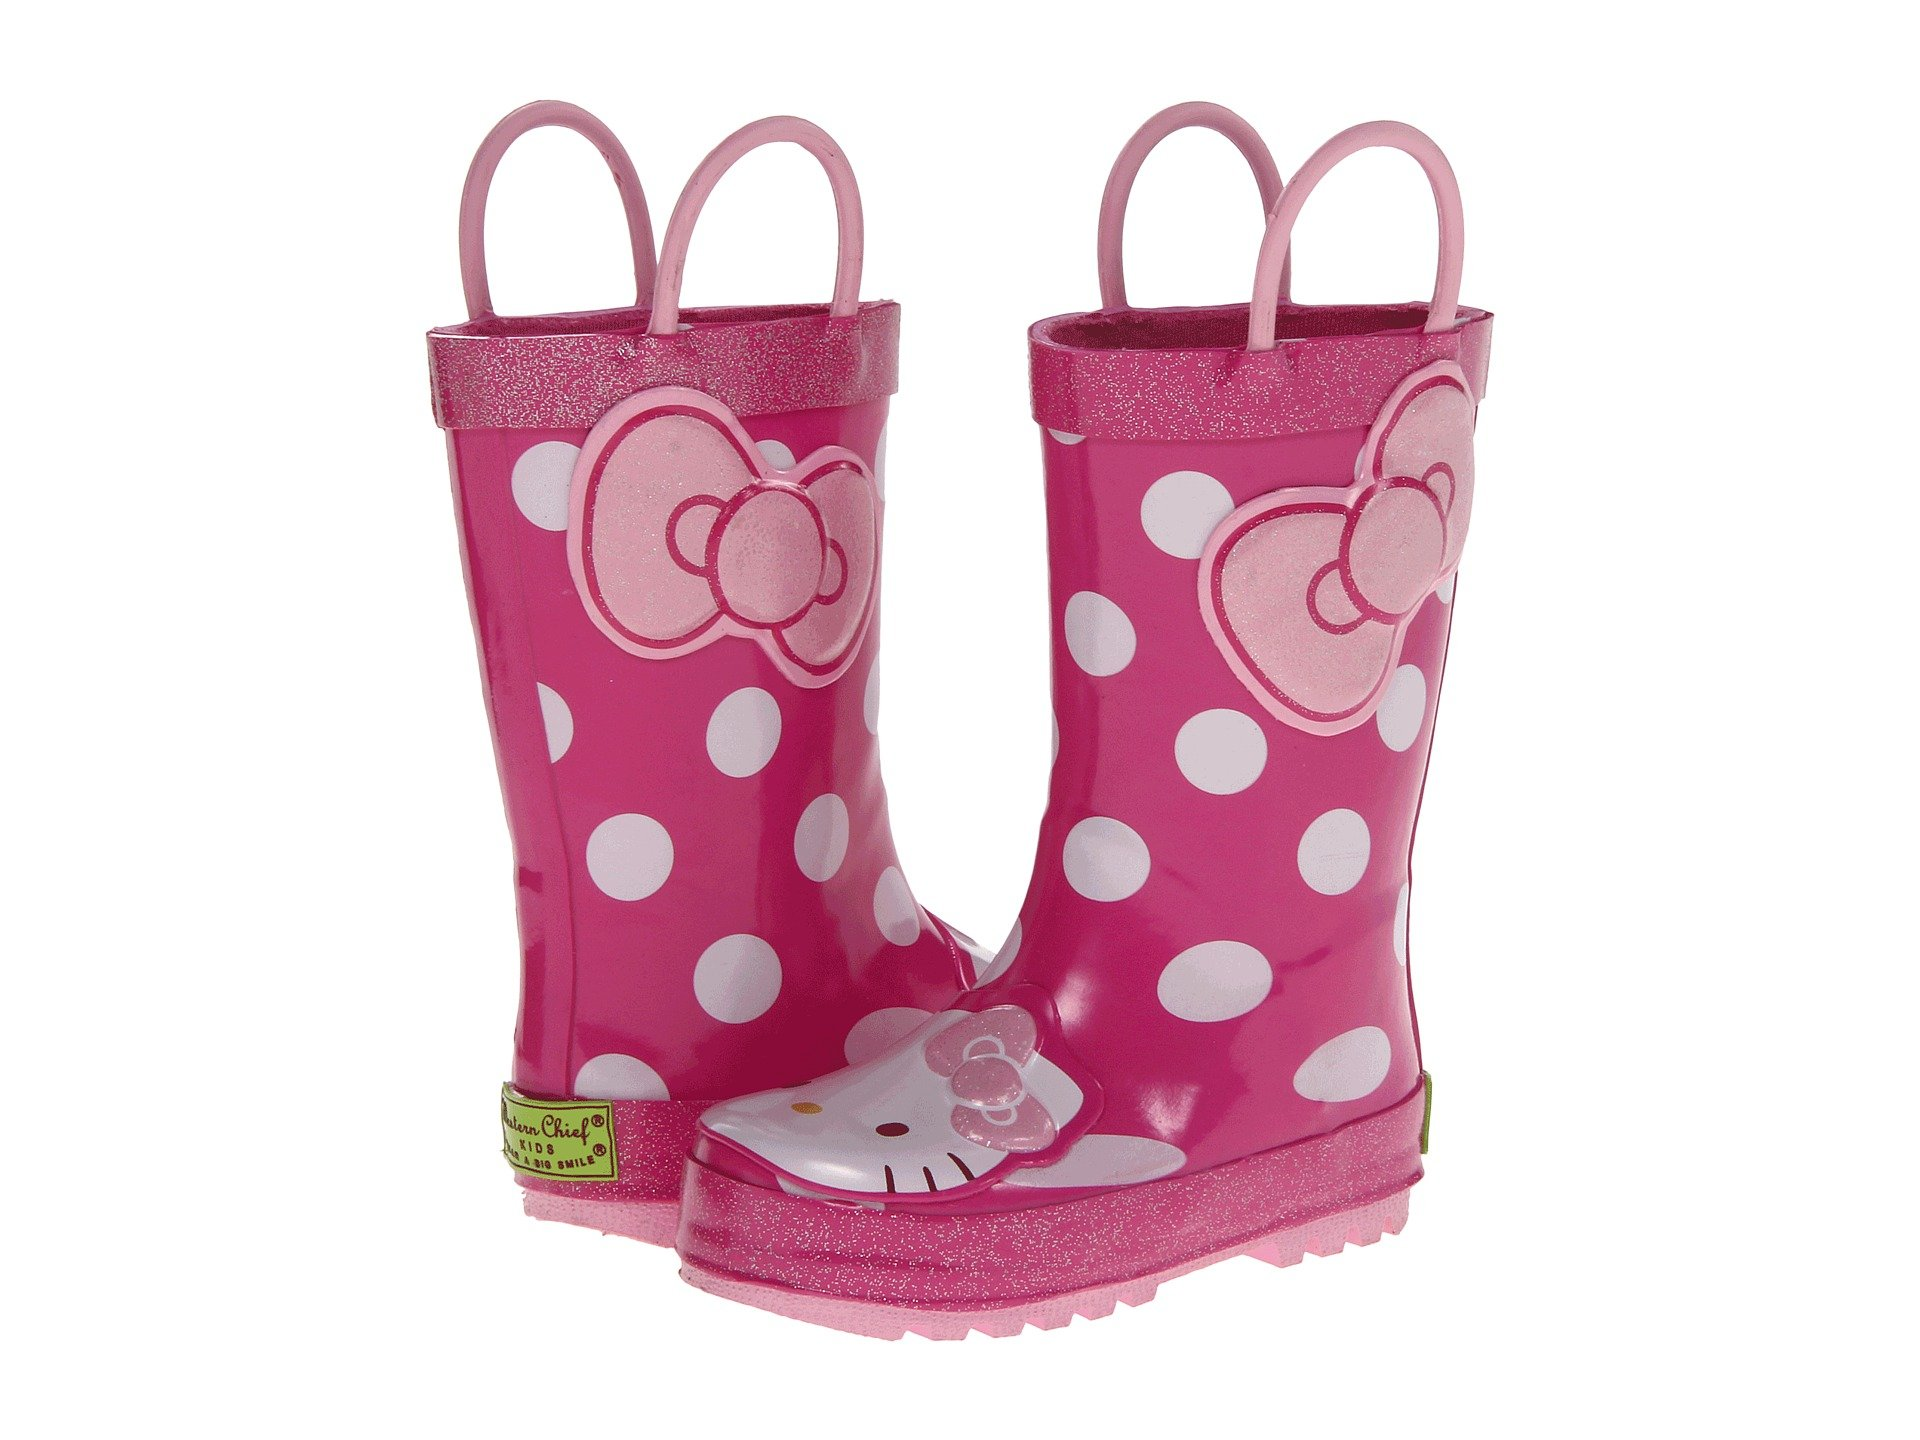 d57b993a650f8 Girls Pink Boots + FREE SHIPPING